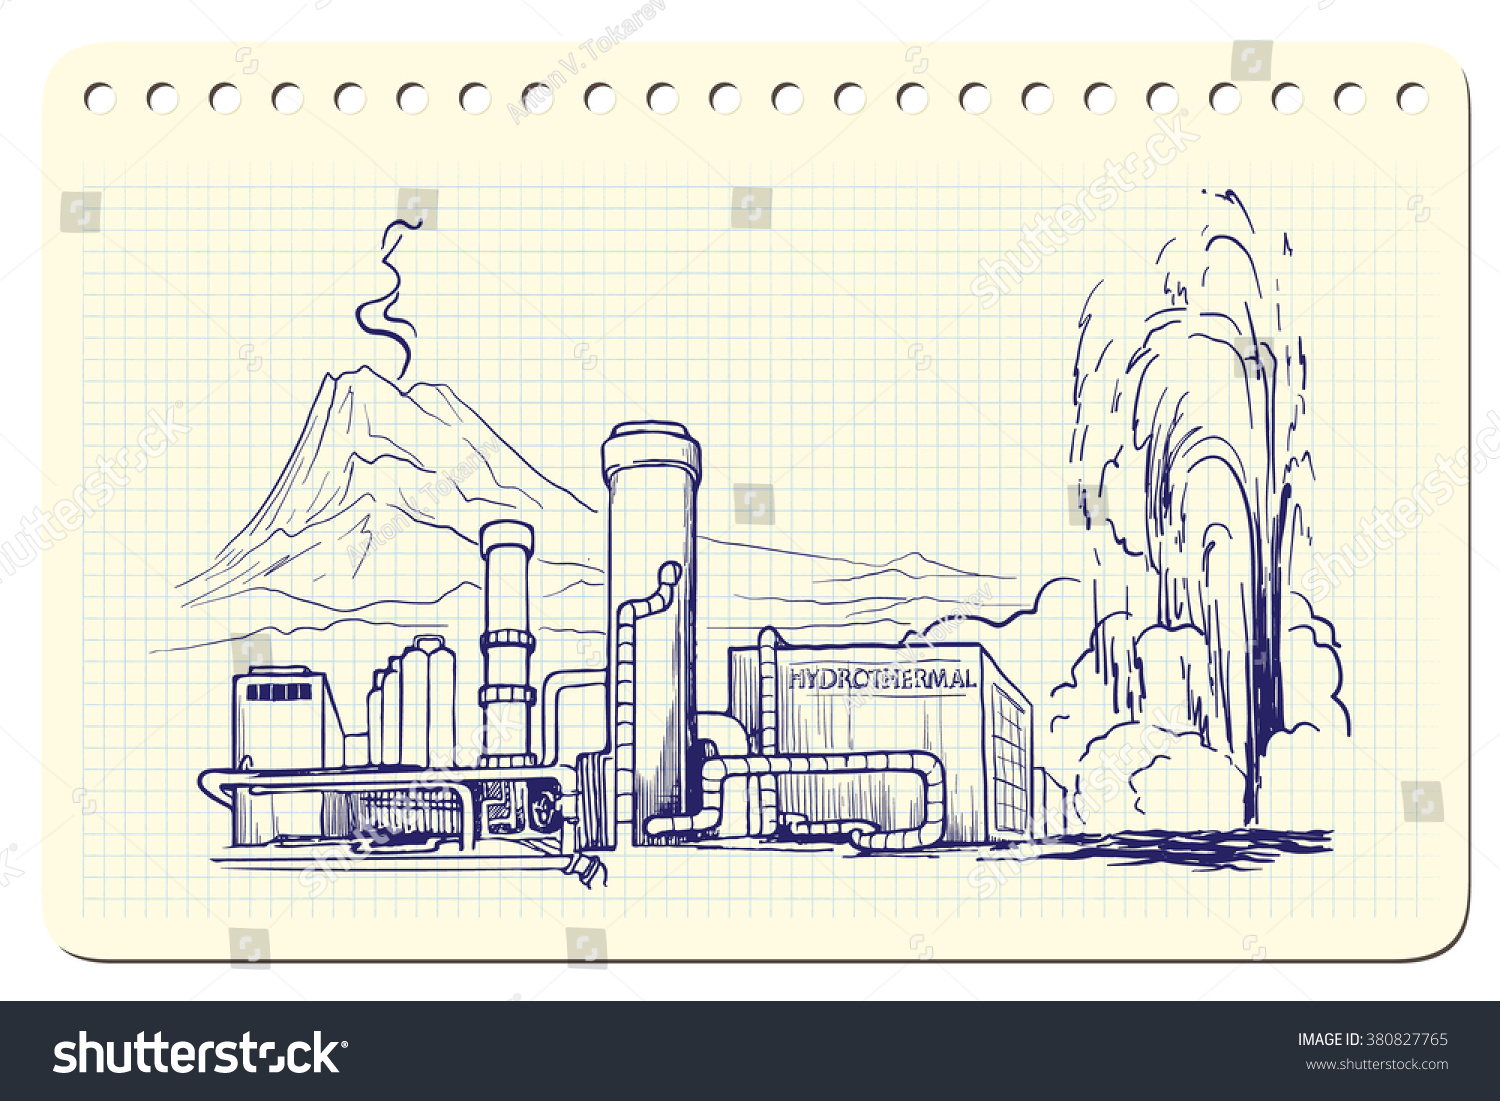 Geothermal Power Station Sketch Imitating Ink Stock Vector Royalty Plant Diagram Pen Scribbling In A Notepad Is Isolated